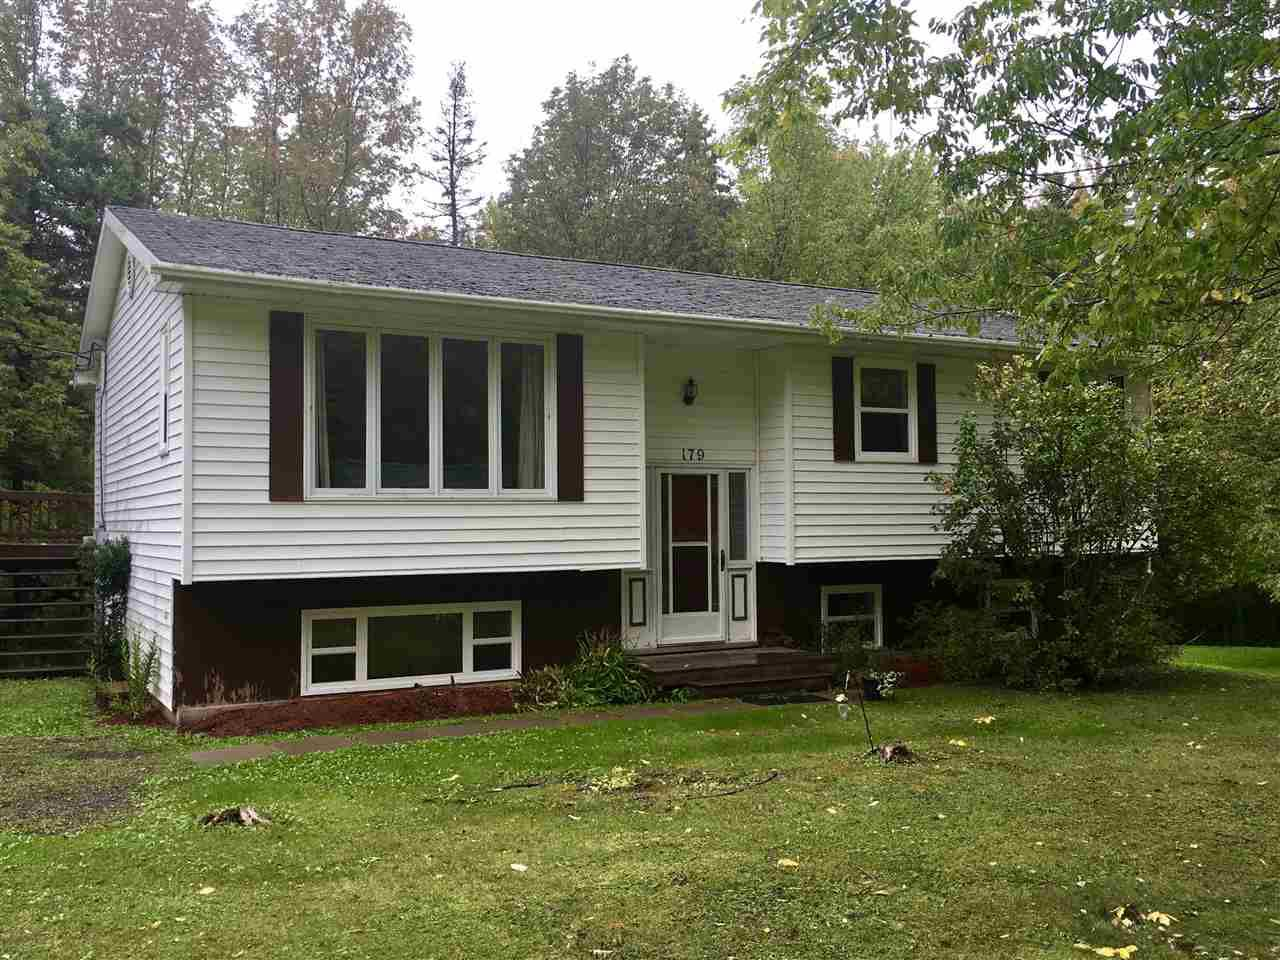 Main Photo: 179 Summit Road in Sylvester: 108-Rural Pictou County Residential for sale (Northern Region)  : MLS®# 201823854